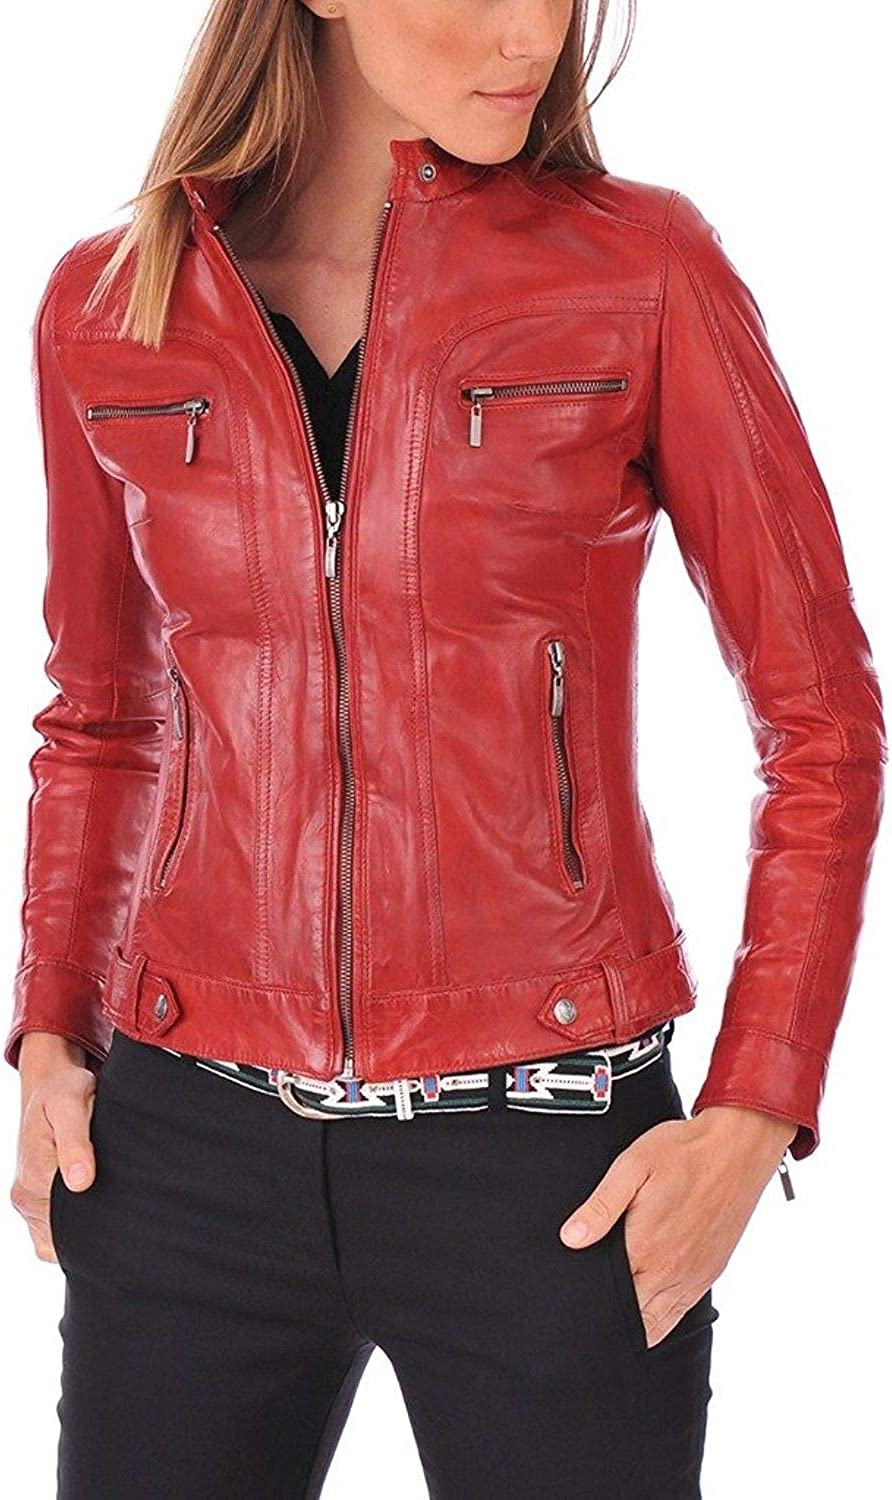 New Fashion Style Womens Leather Jackets Motorcycle Bomber Biker Red Real Leather Jacket Women